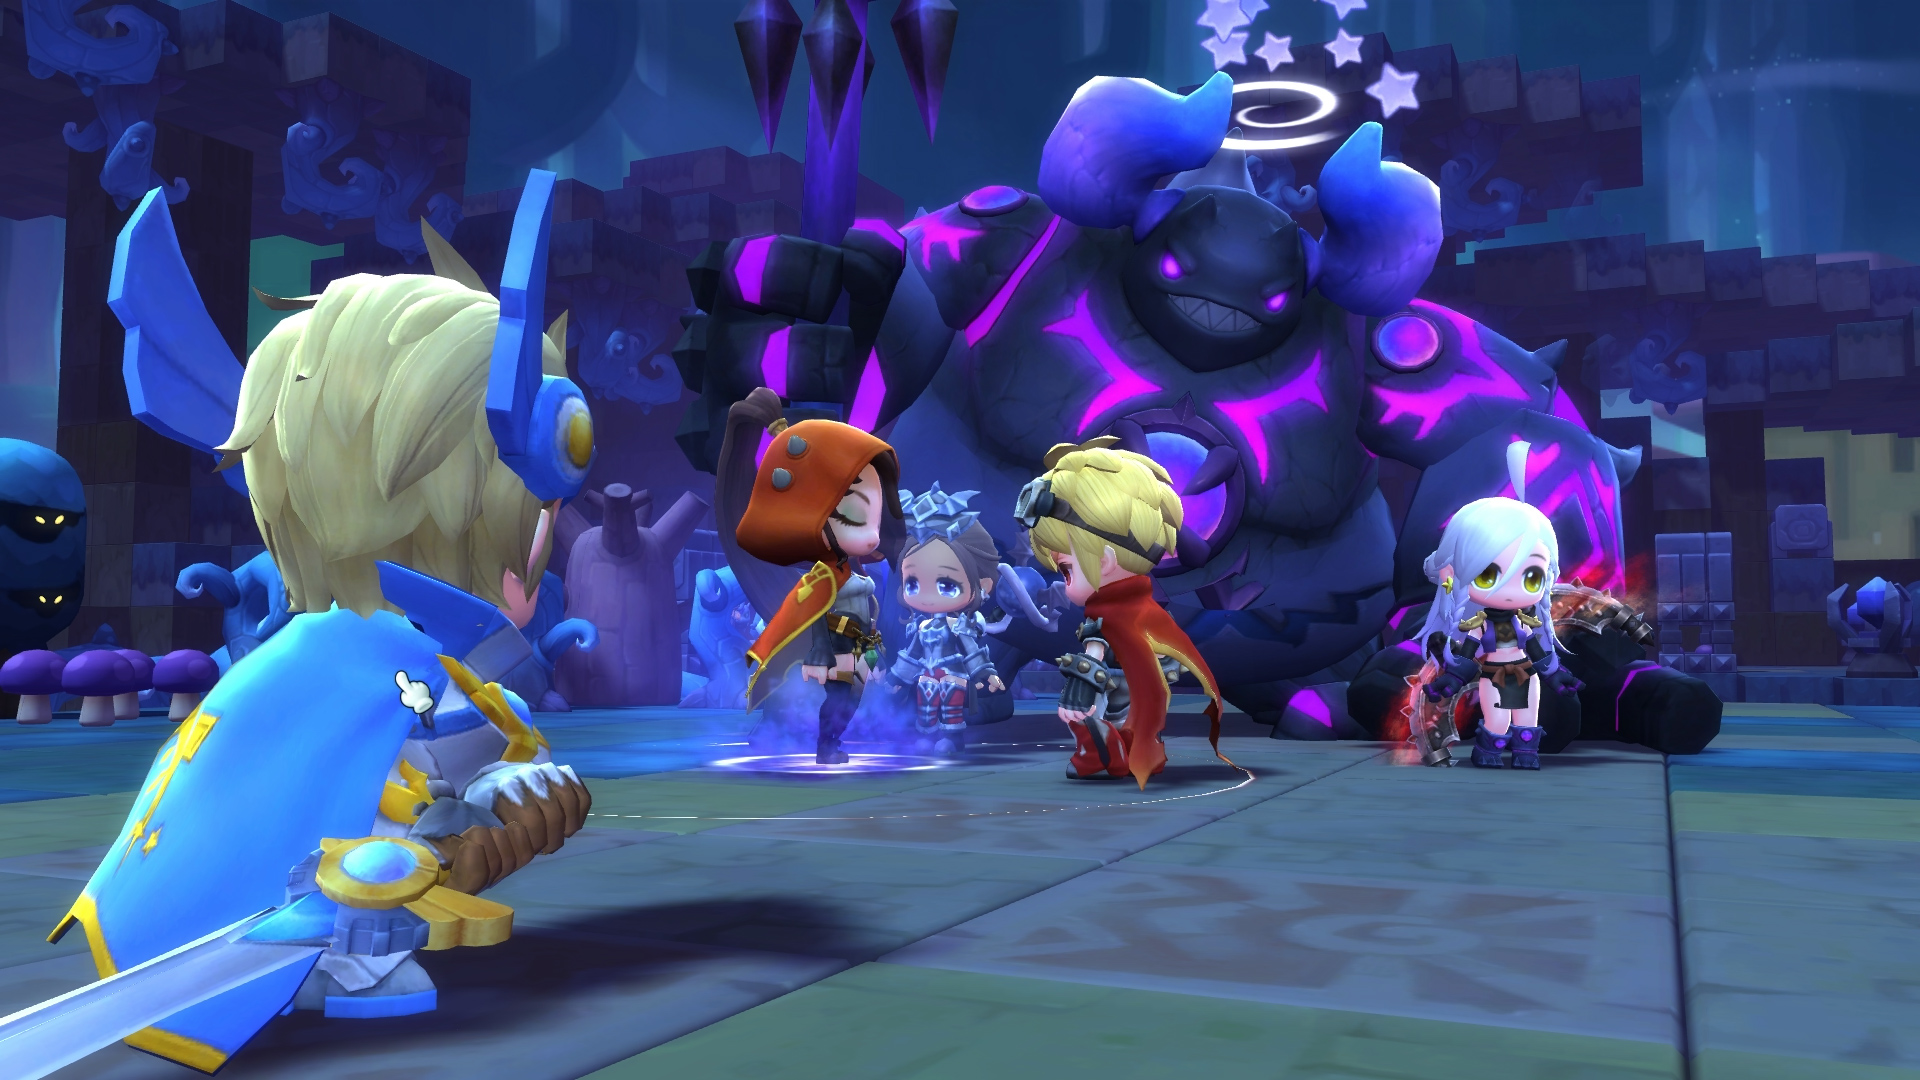 What\\\'s new in MapleStory 2?